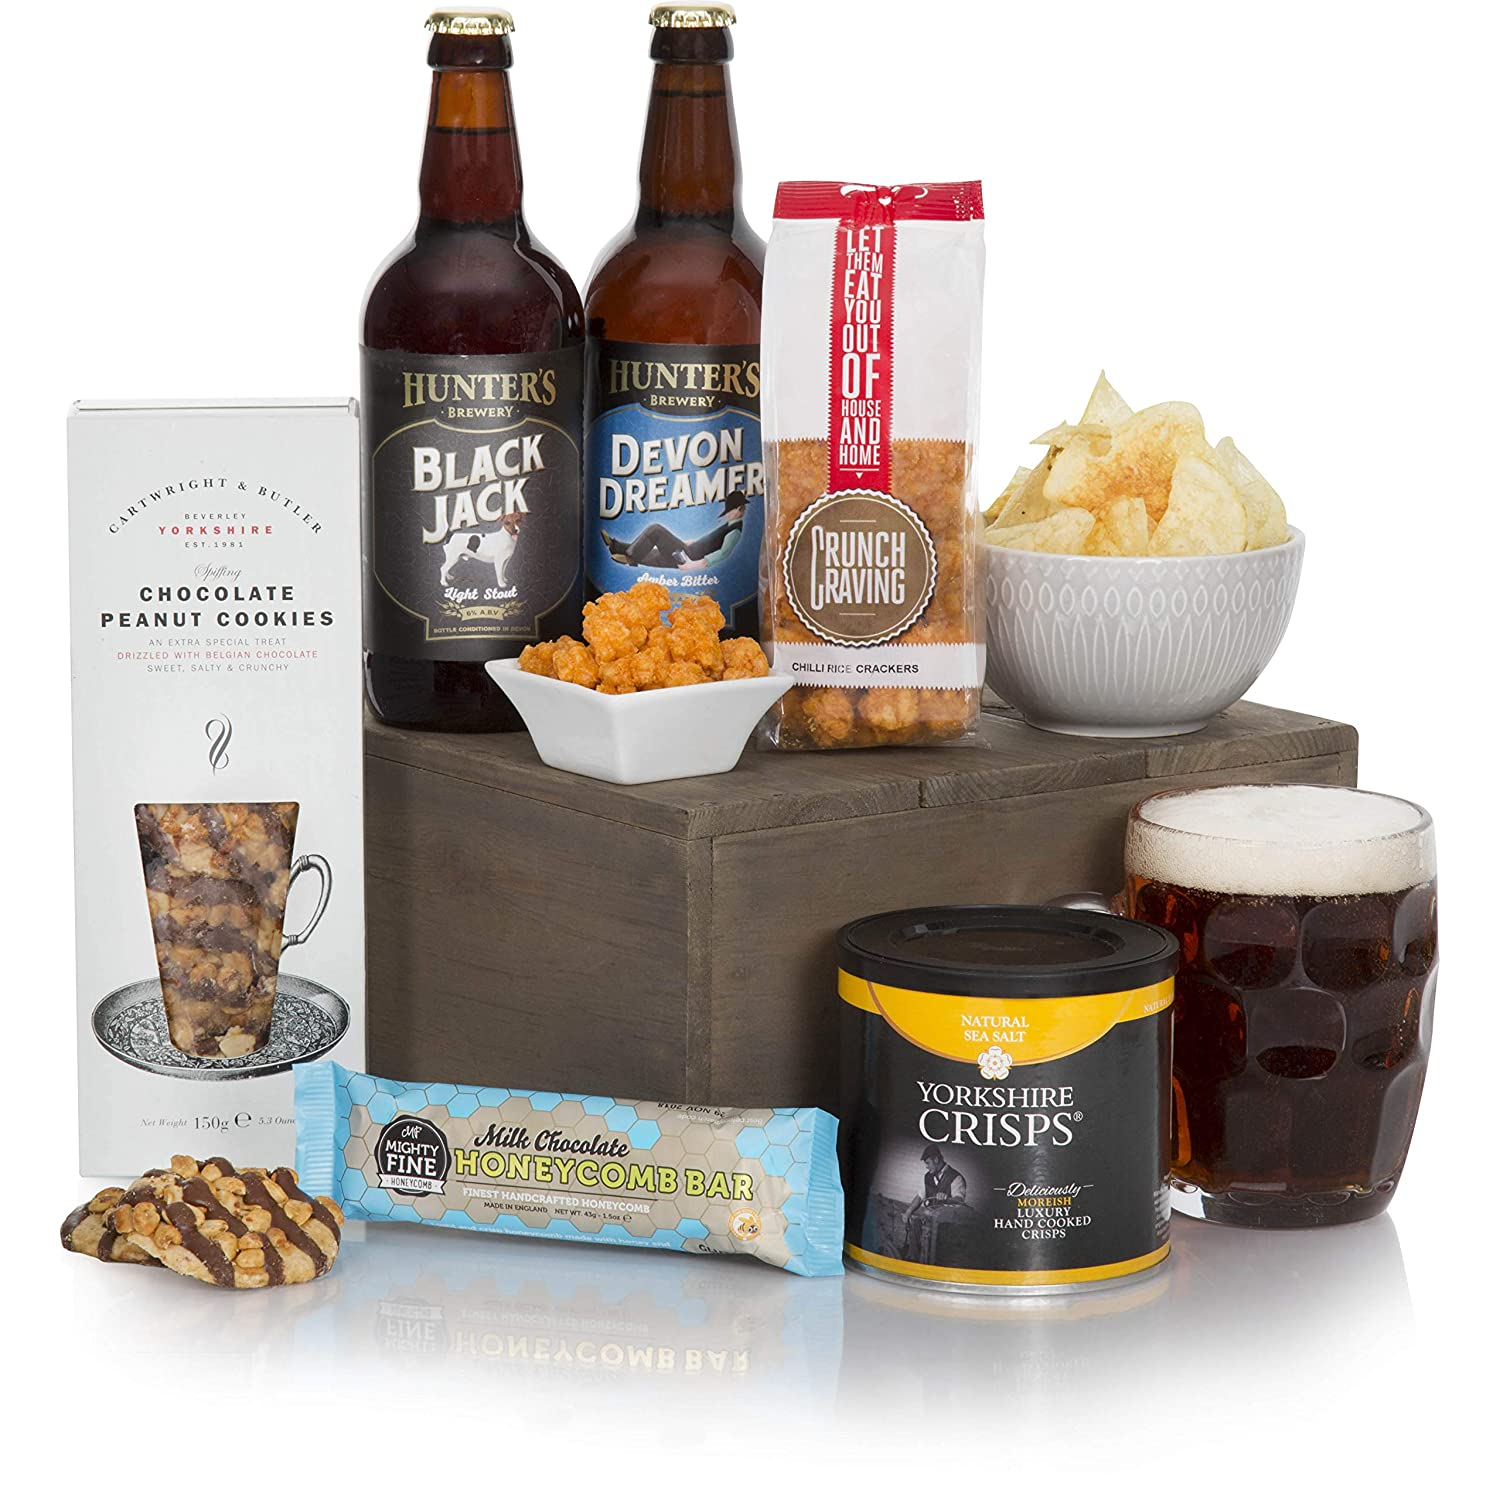 Craft Beer & Snacks Hamper - Real Ale Beer and Food Hampers and Gift  Baskets For Men - Birthday Gift Ideas For Men